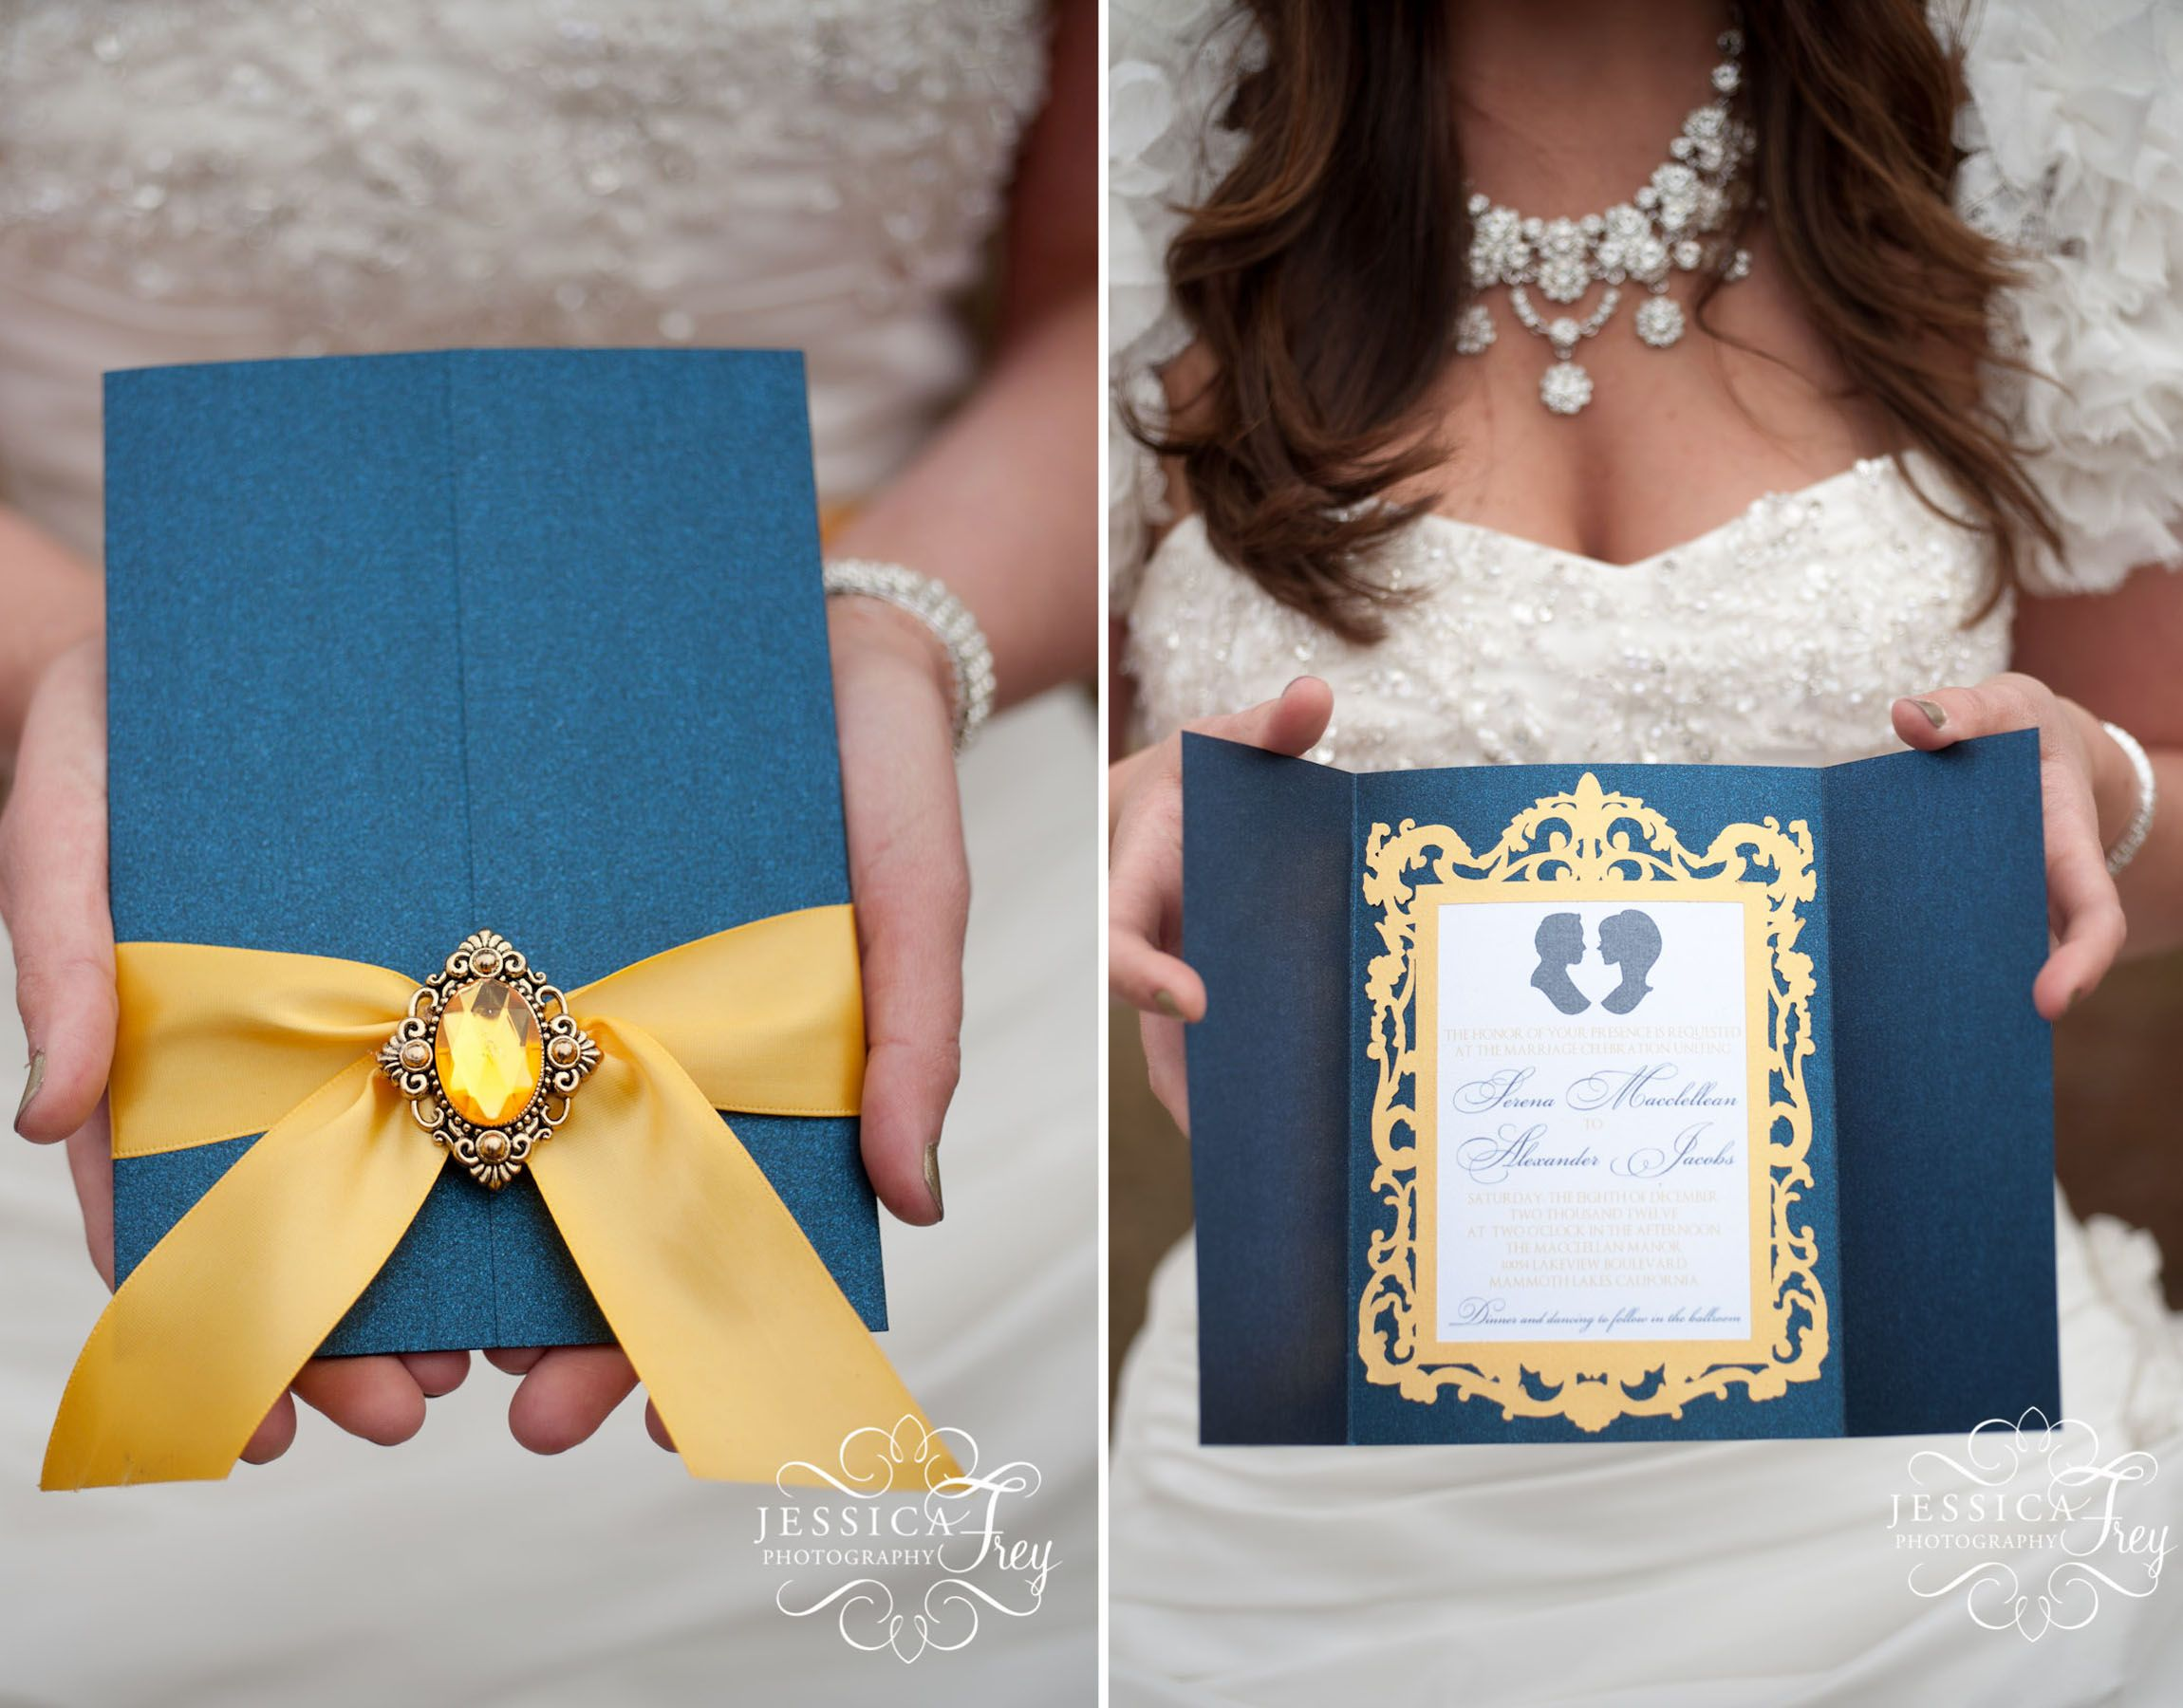 Beauty And The Beast Themed Wedding Invitations: Beauty And The Beast Inspired Wedding Invitations